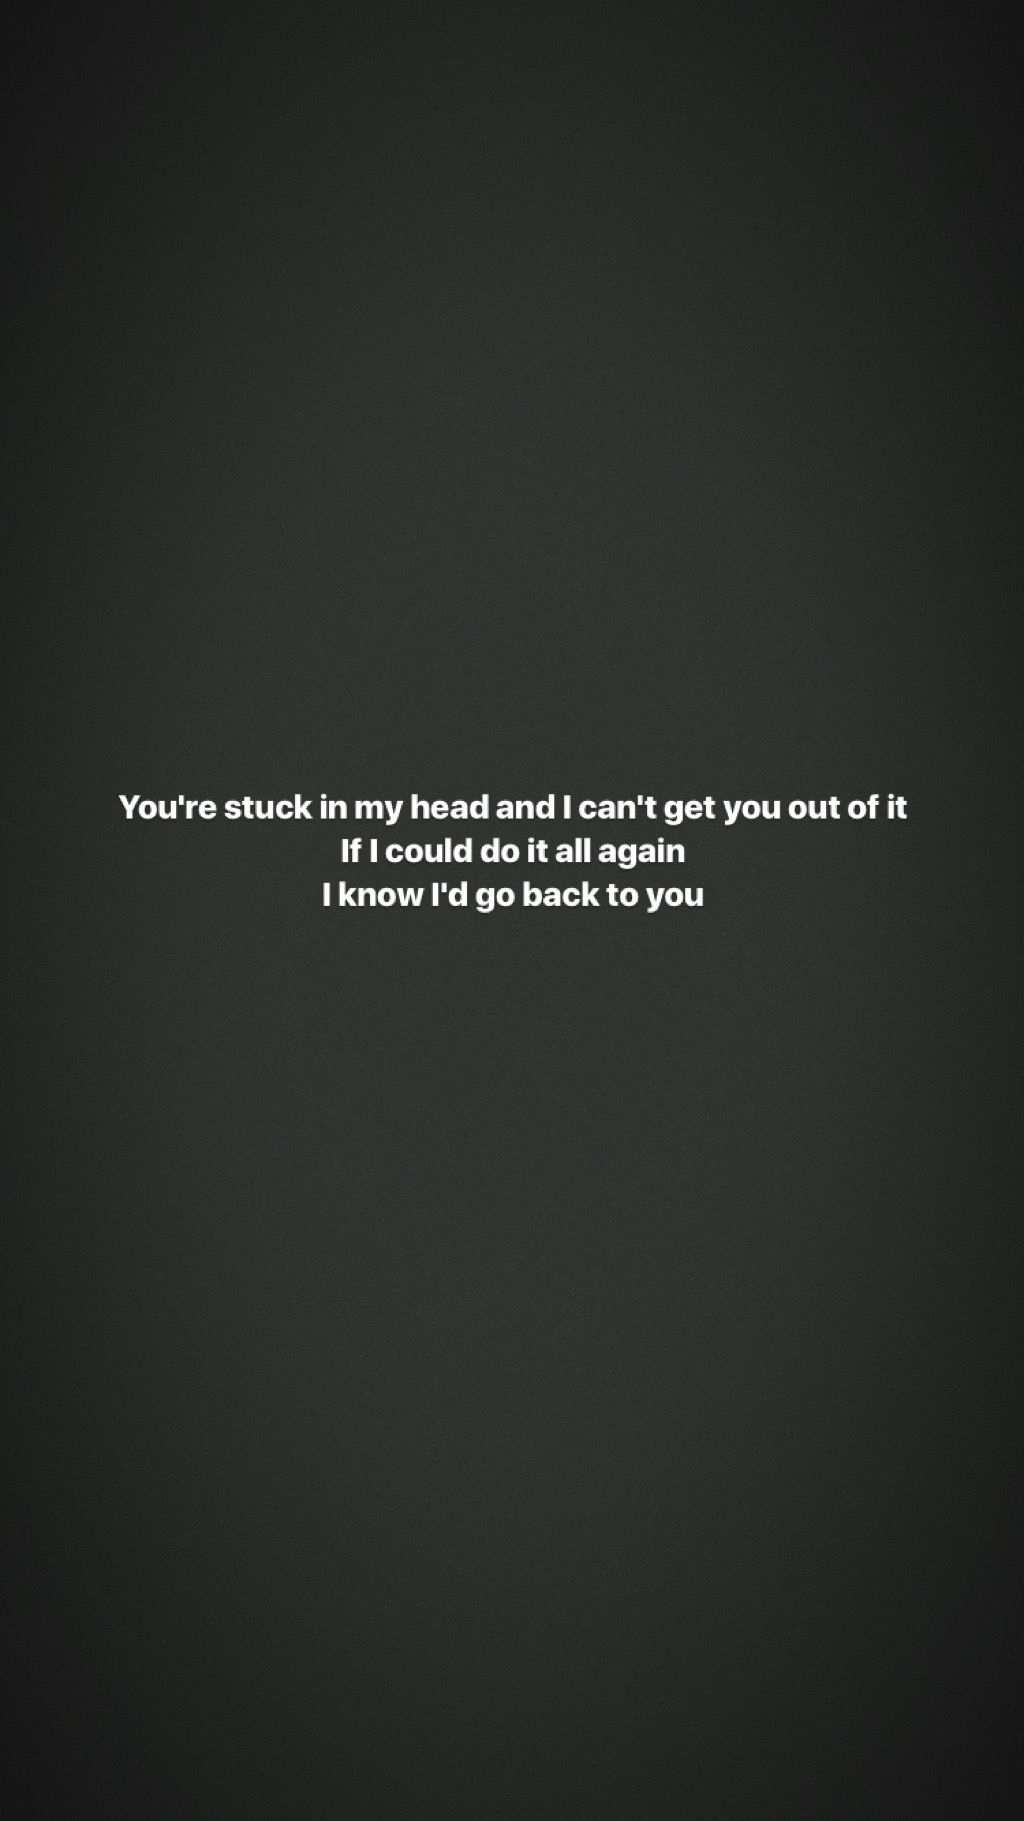 Back To You // Selena Gomez | Love song quotes, Music quotes ...